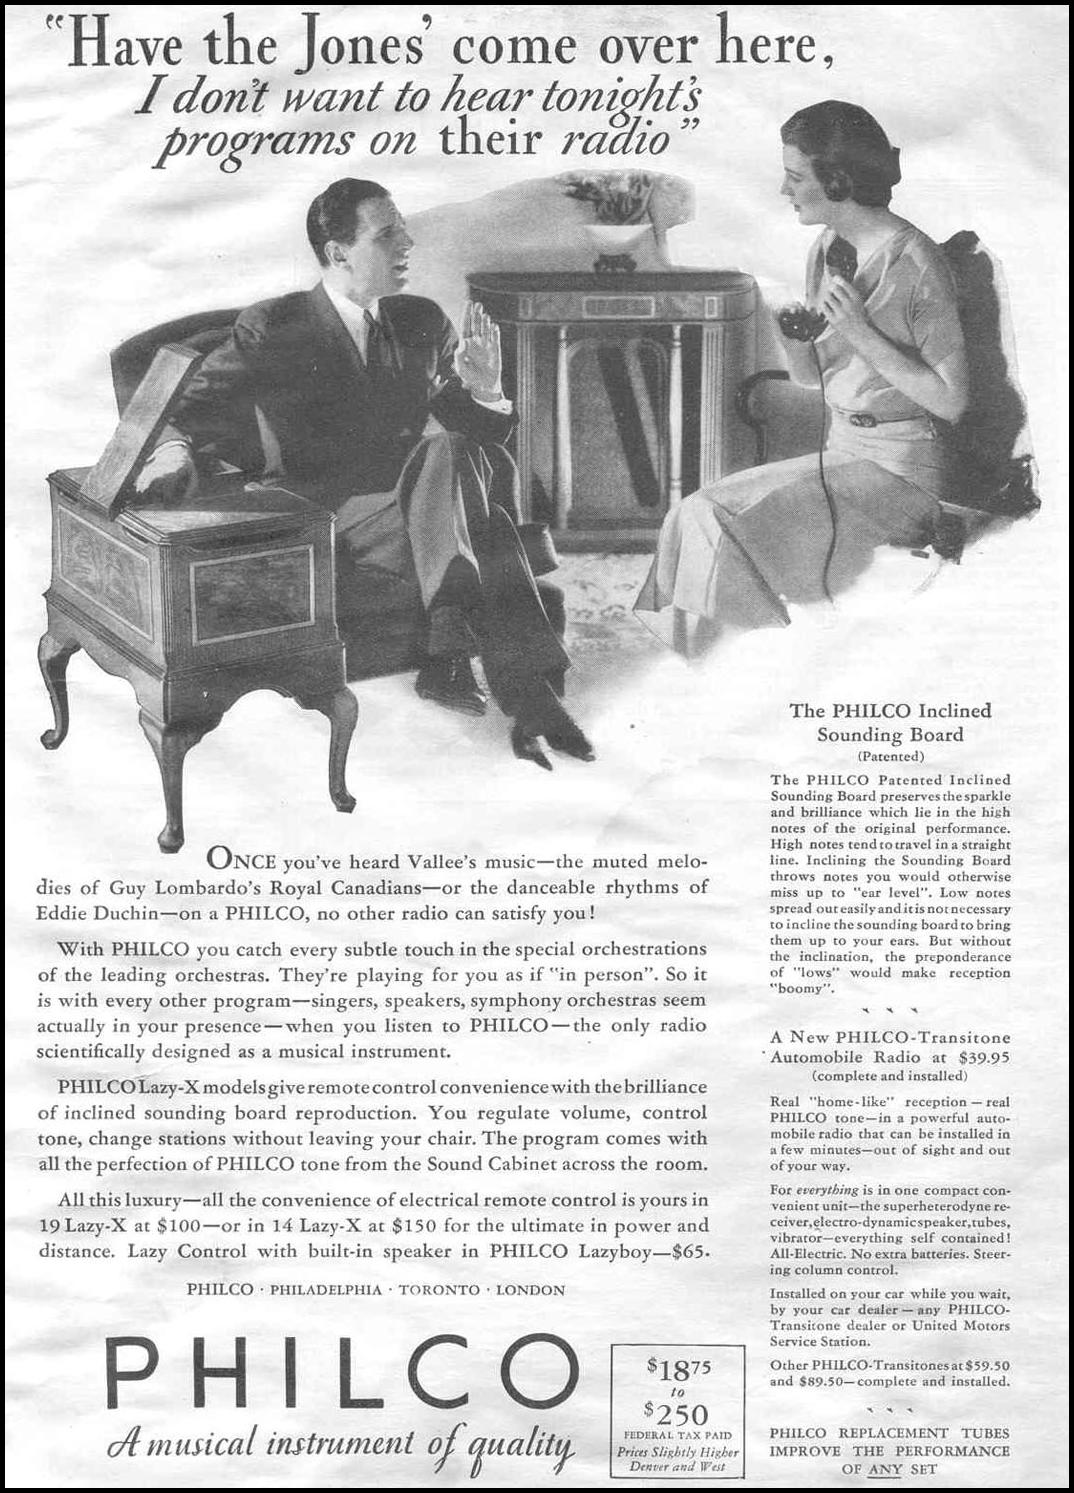 PHILCO RADIOS GOOD HOUSEKEEPING 06/01/1933 p. 5